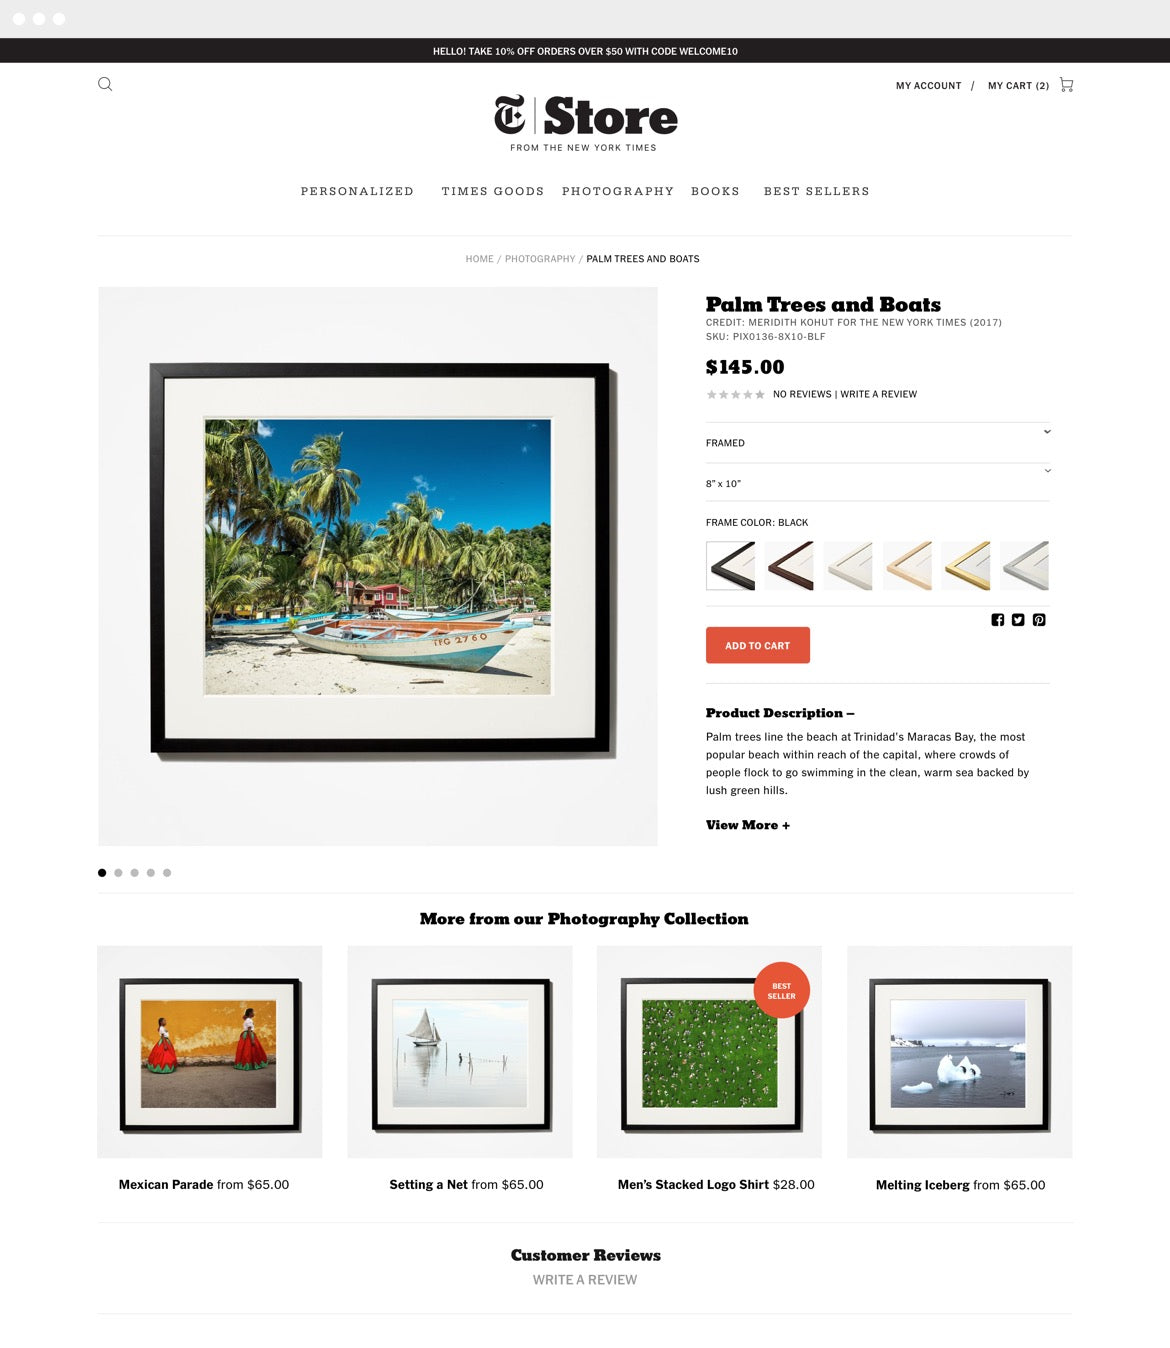 NYT Store Project Image